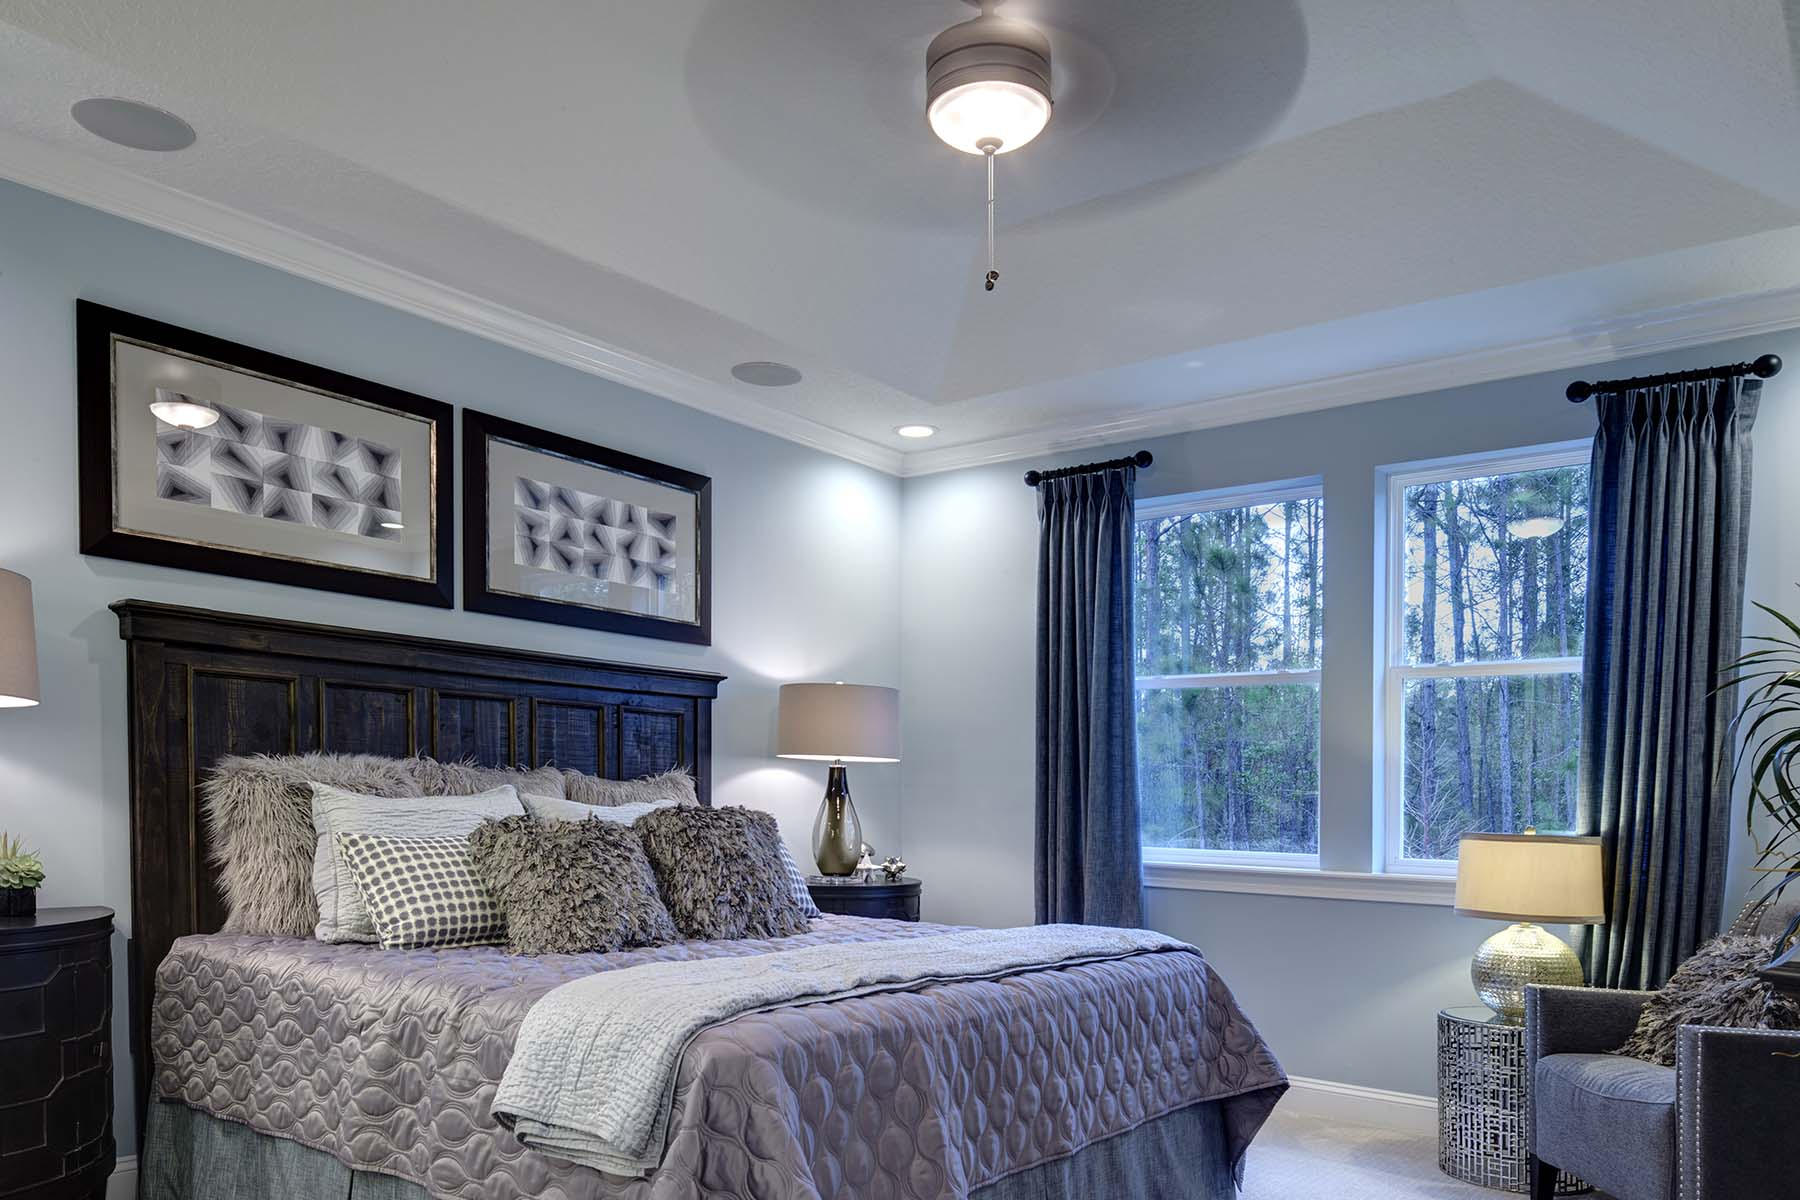 Egret Plan Bedroom at RiverTown - Arbors in St. Johns Florida by Mattamy Homes